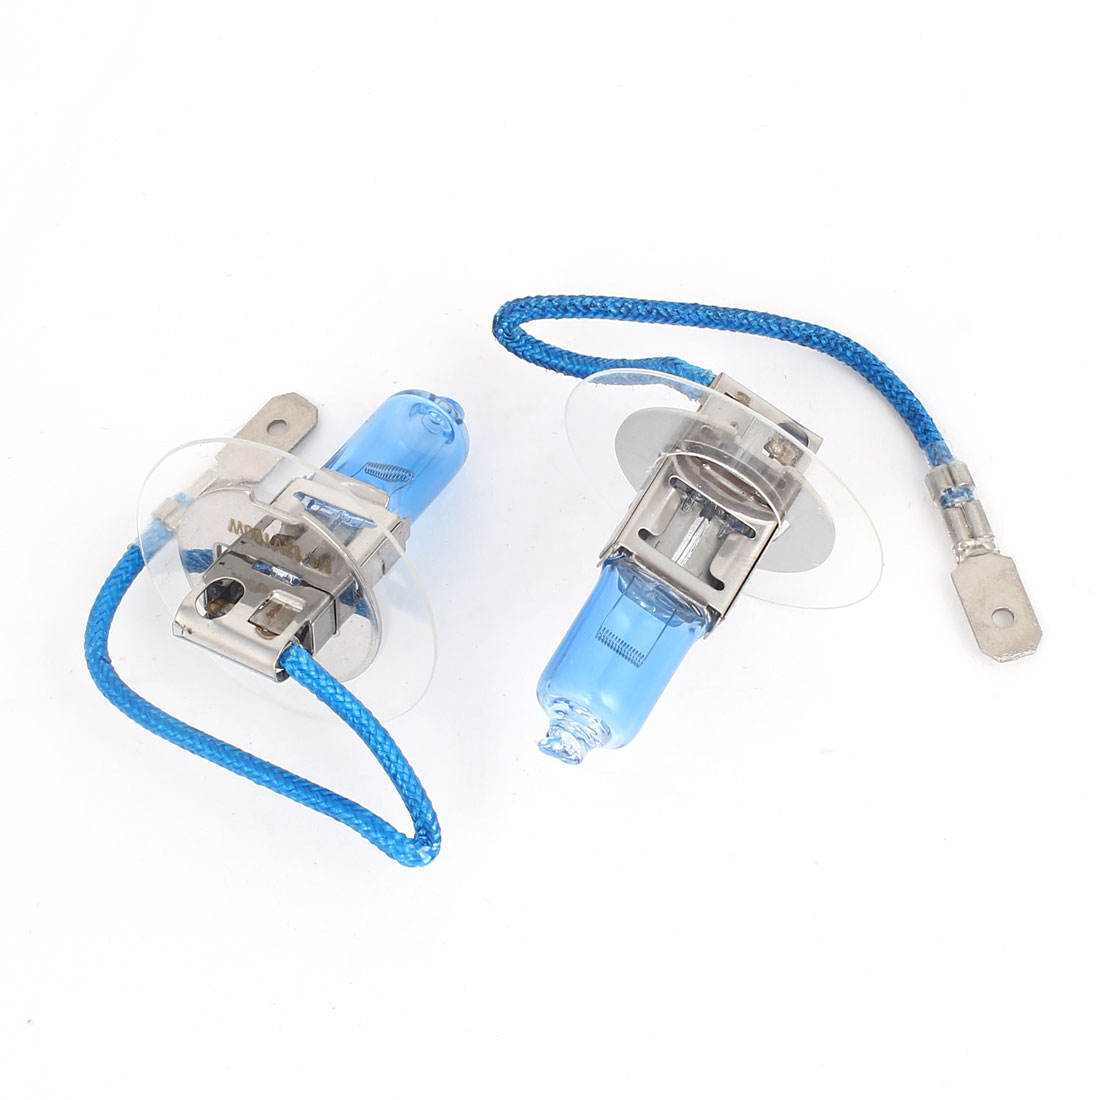 2 Pcs 12V 100W H3 White Car DRL Foglight Light Head Spare Bulb Lamp